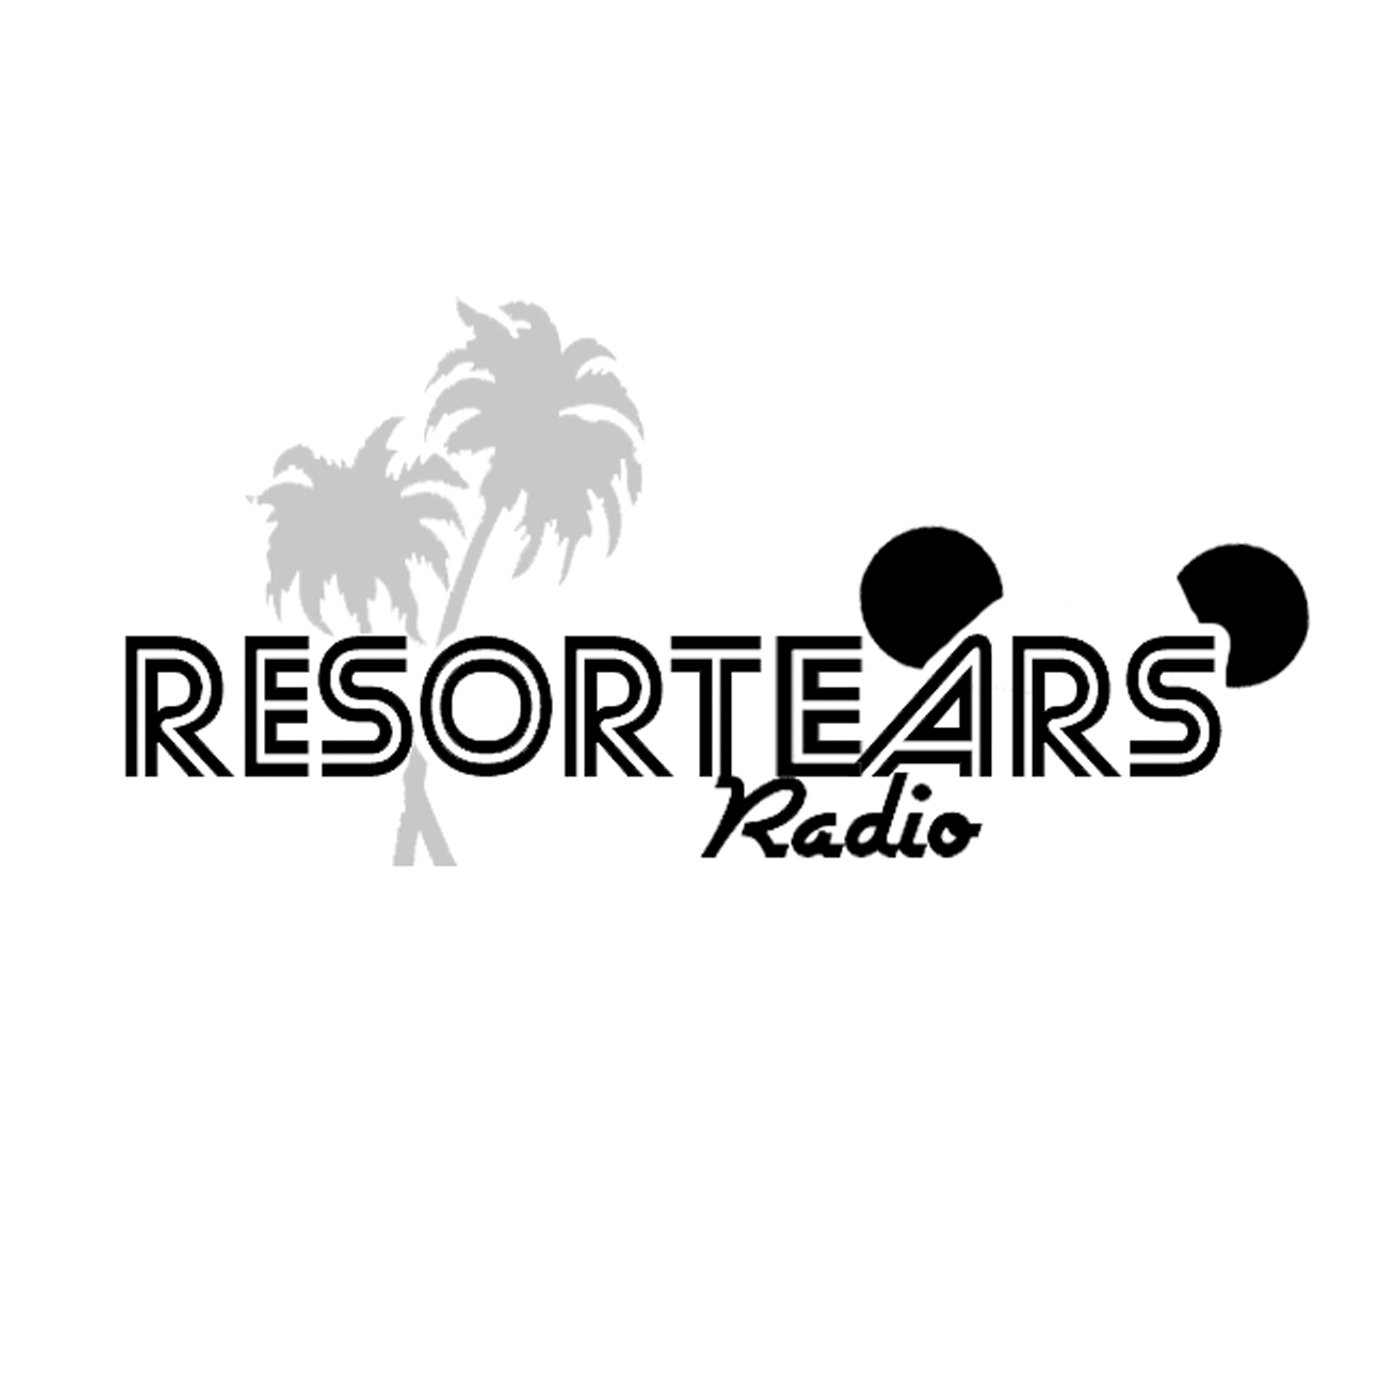 Resort Ears Radio